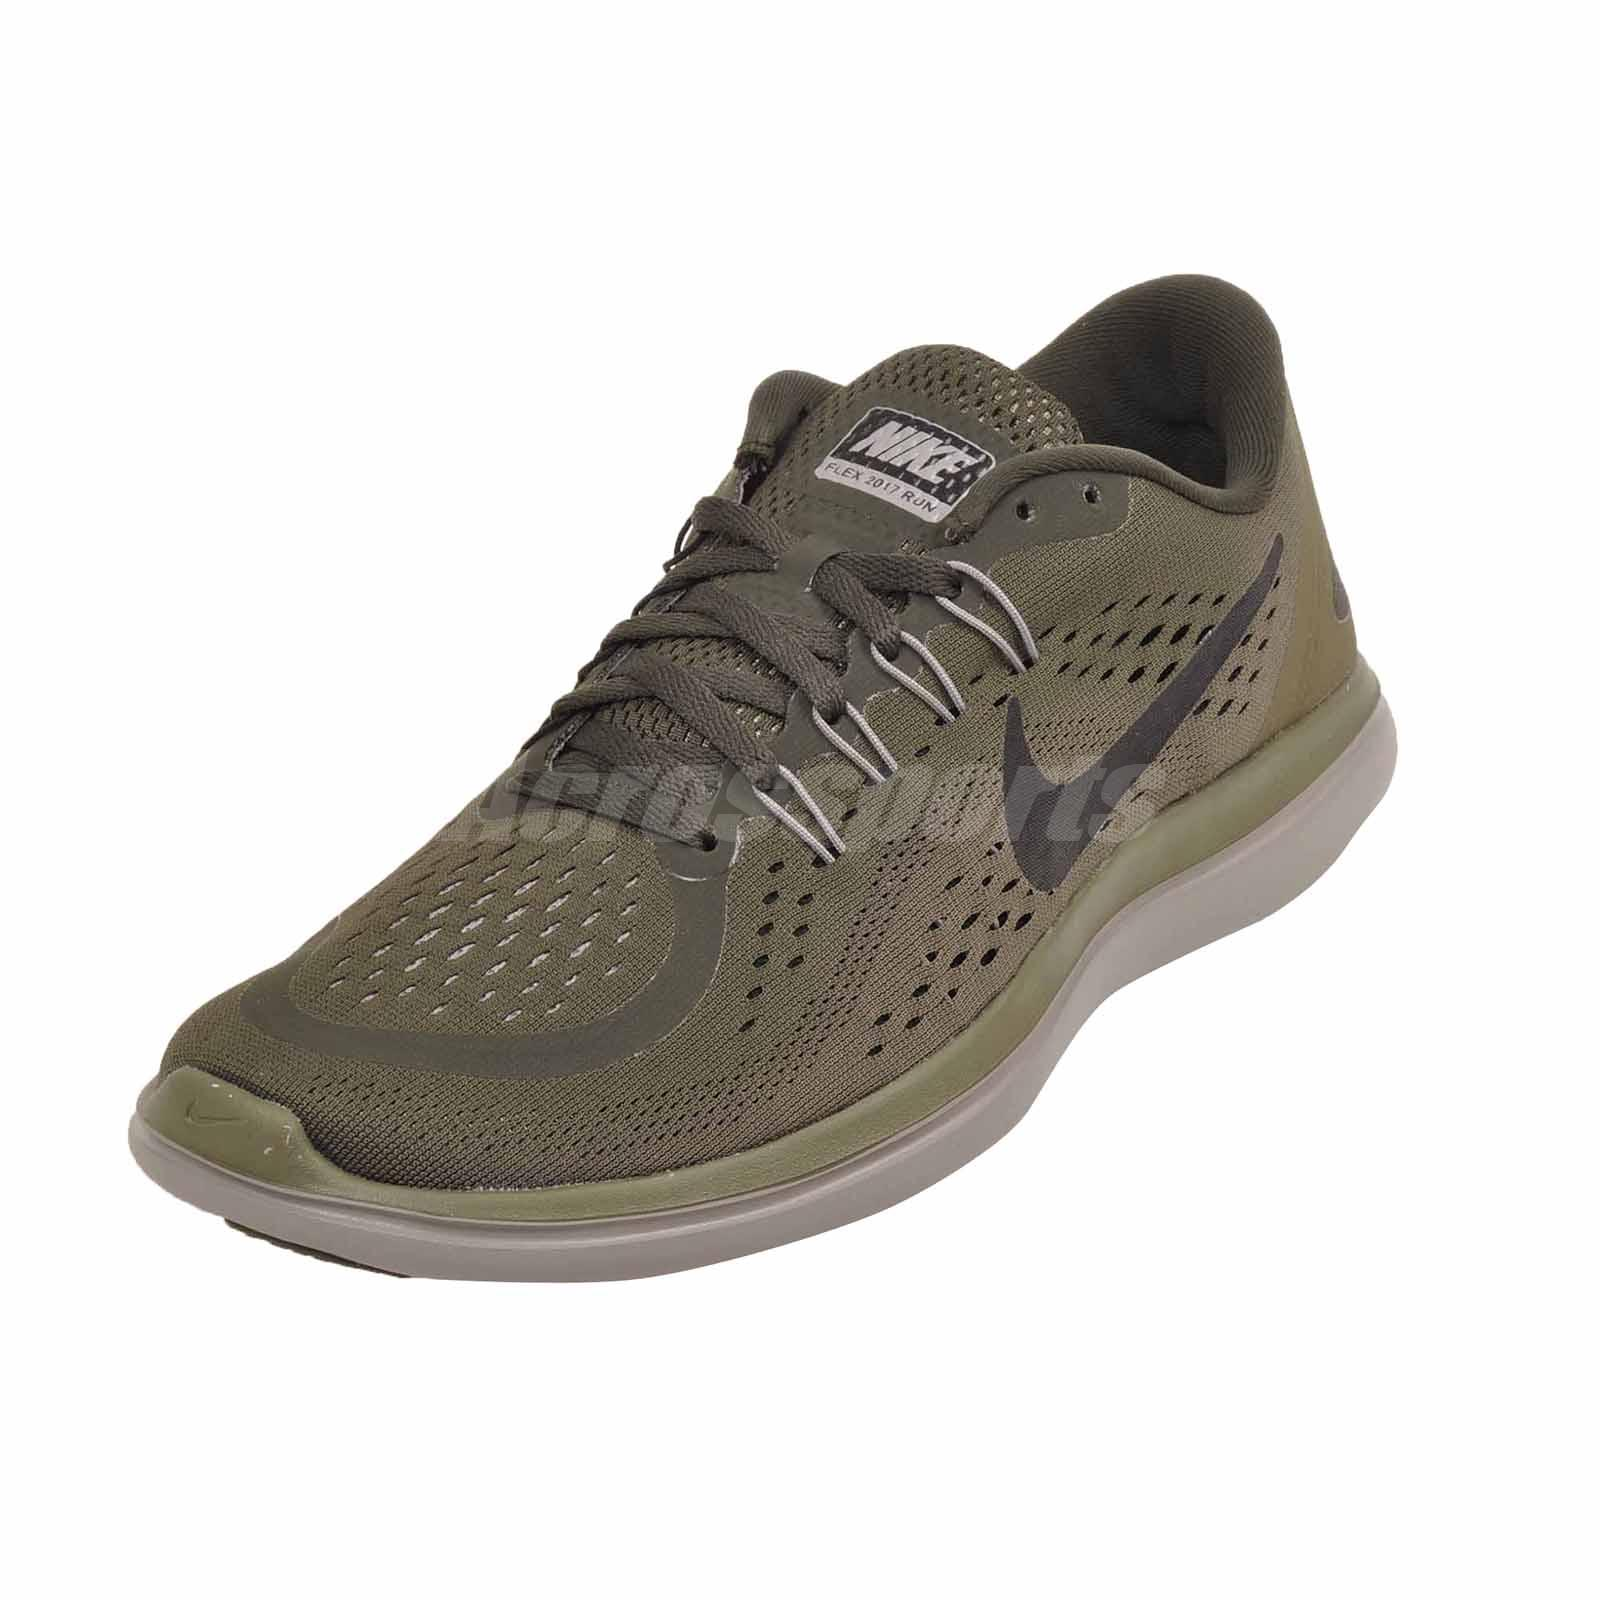 5fb4d53571a Nike Flex 2017 RN Running Mens Shoes Sequoia Olive 898457-300